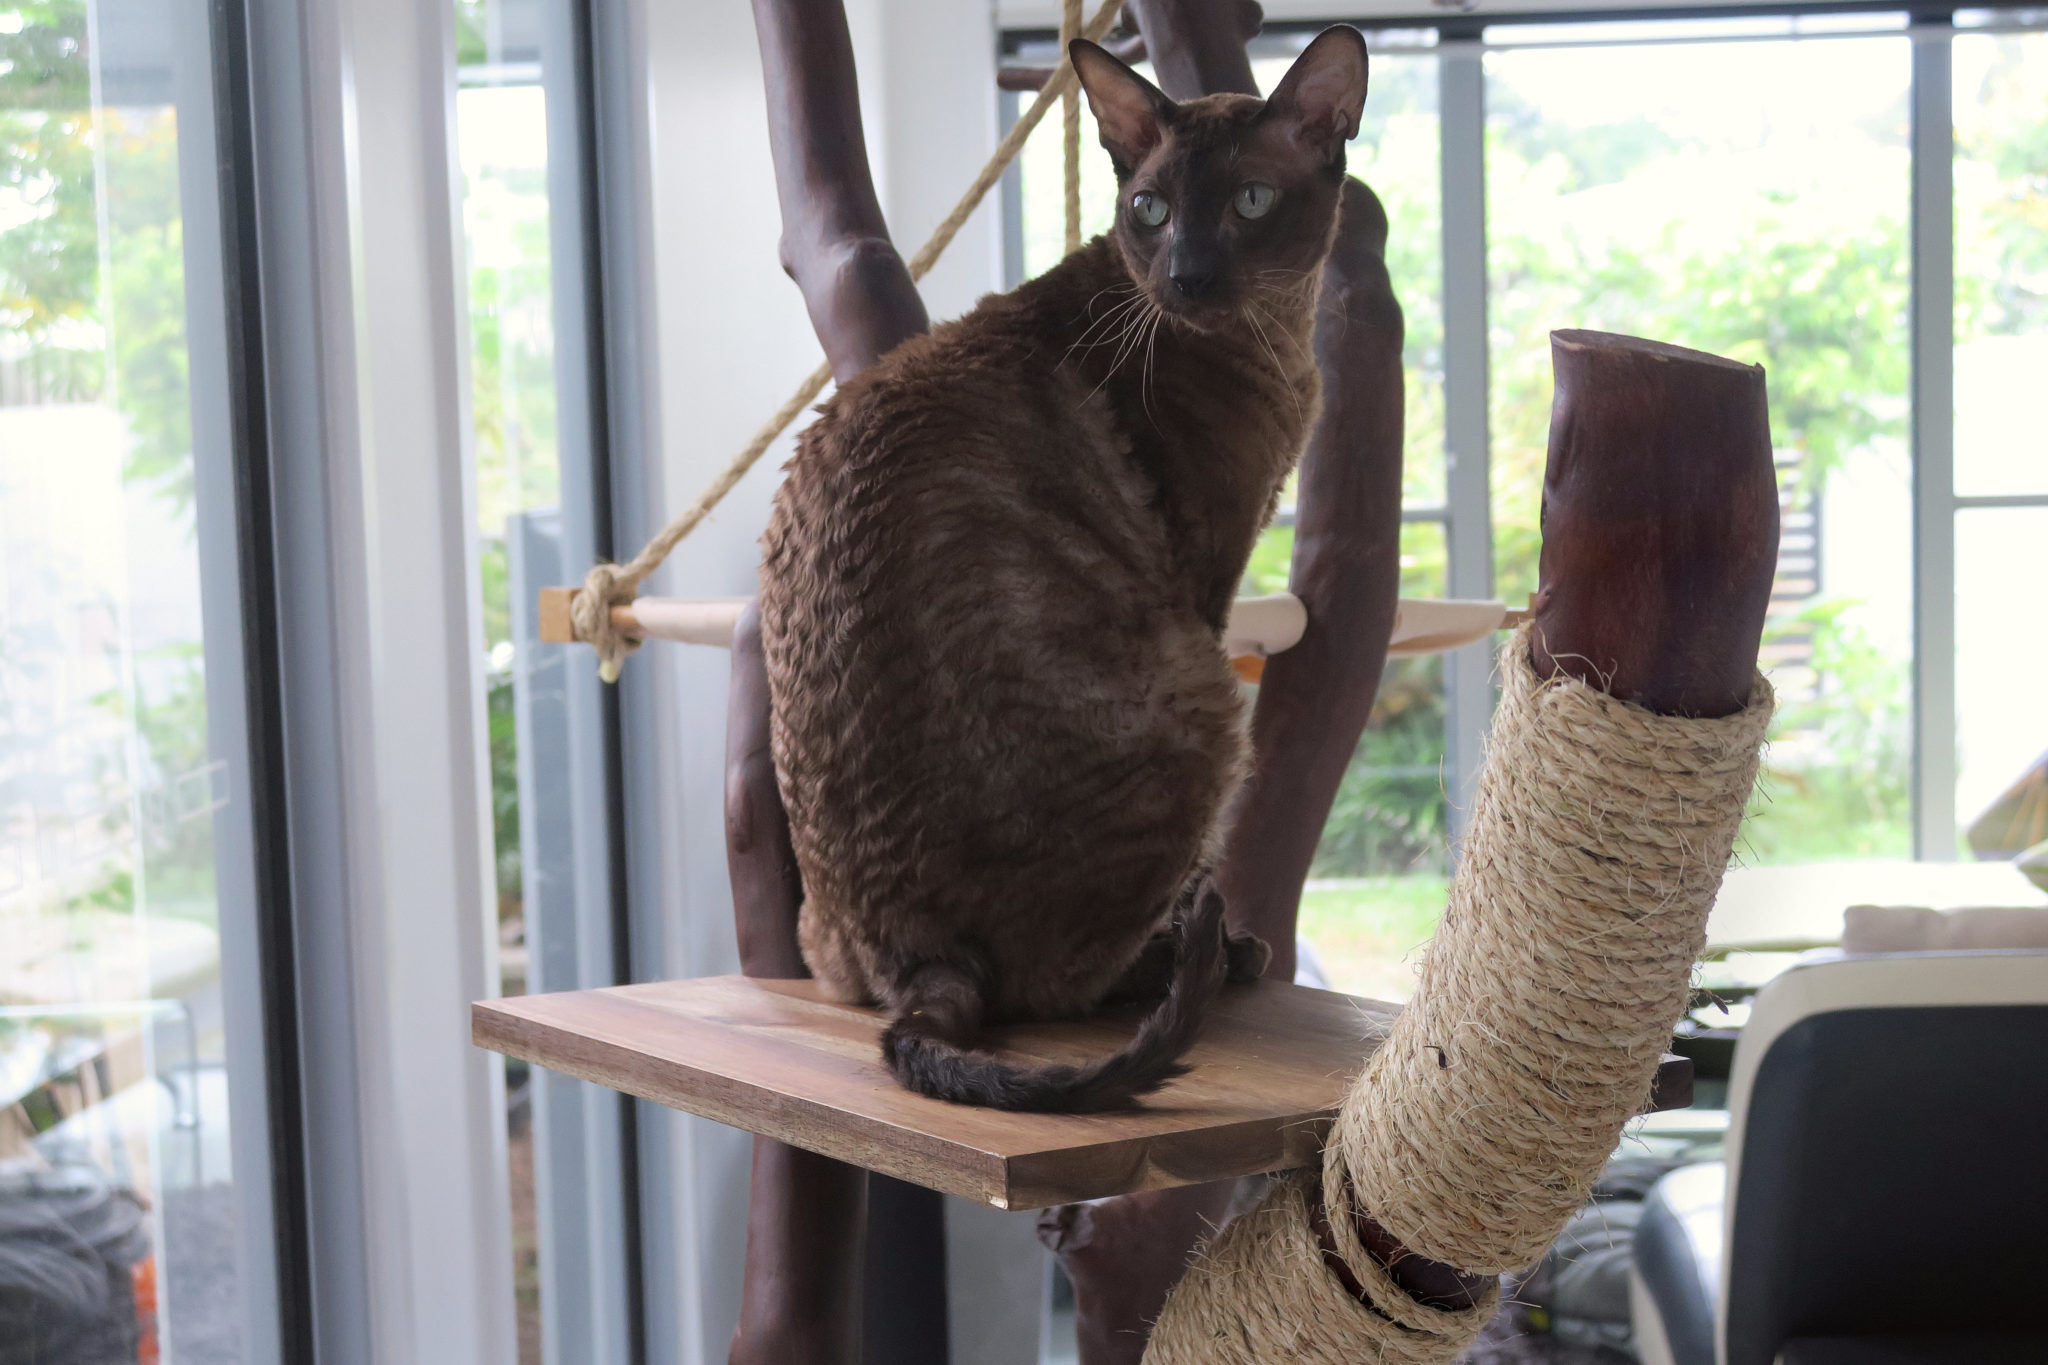 Radagast the Brown cat sits on platform of homemade cat tree